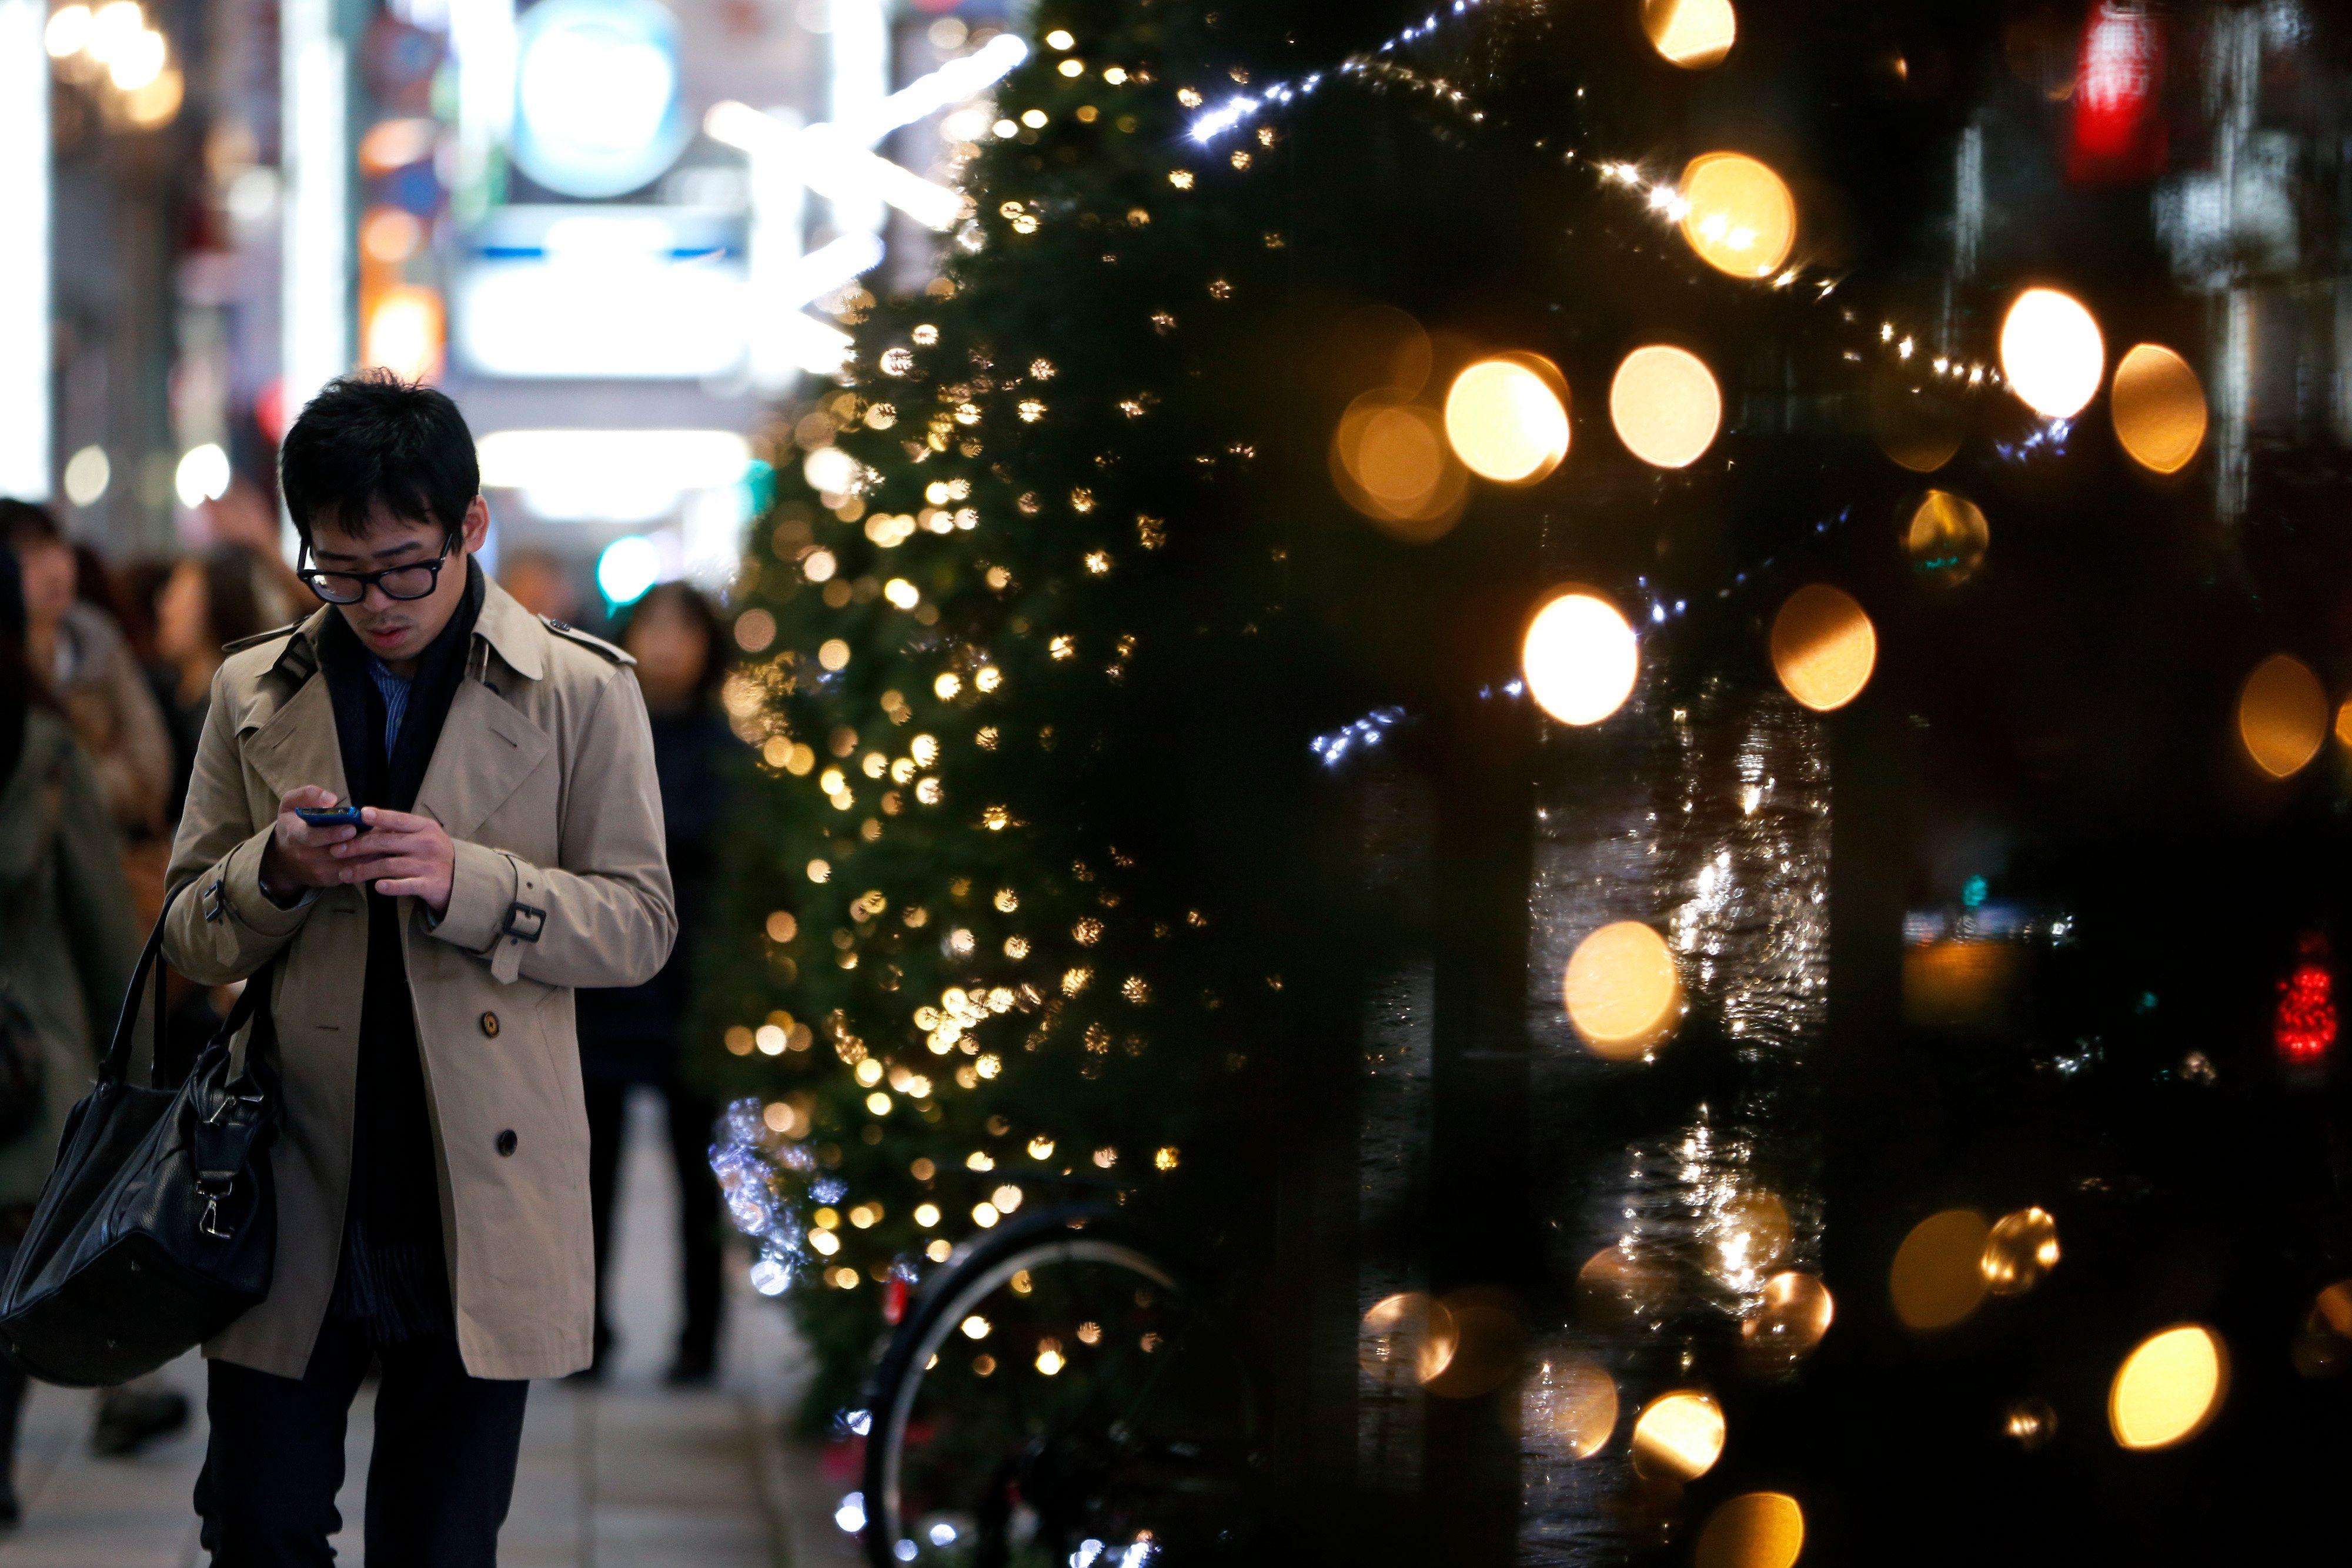 A pedestrian uses a mobile phone as he walks along a street while Christmas trees stand on display in Tokyo, Japan, on Thursday, Dec. 5, 2013. The cabinet approved an 18.6 trillion yen ($182 billion) economic package to cushion the economic blow from a sales-tax increase next April. The package includes 5.5 trillion yen in spending and the government projects it will boost real gross domestic product by about 1 percent and create about 250,000 jobs. Photographer: Kiyoshi Ota/Bloomberg via Getty Images